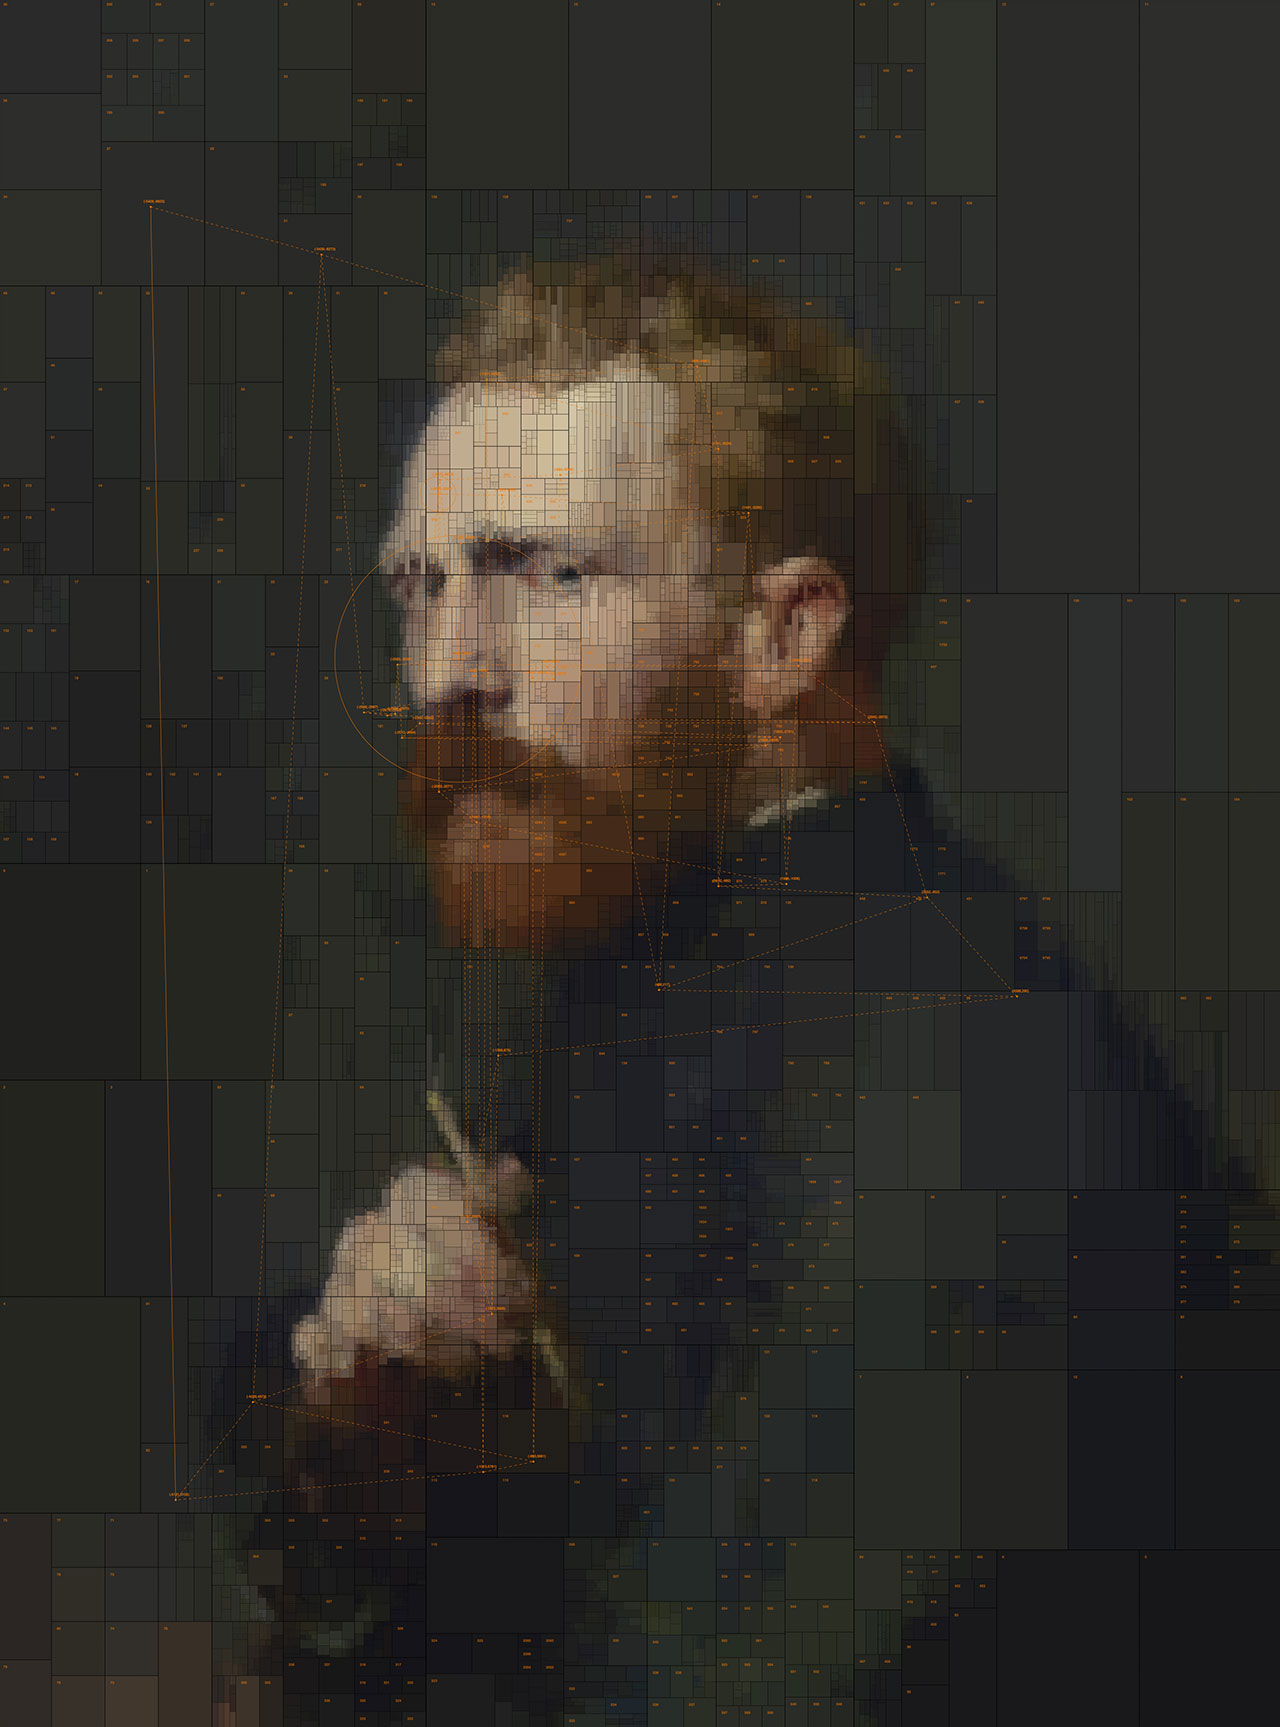 Vincent van Gogh,from Portraits series by Dimitris Ladopoulos (Original painting byJohn Peter Russell,1886).